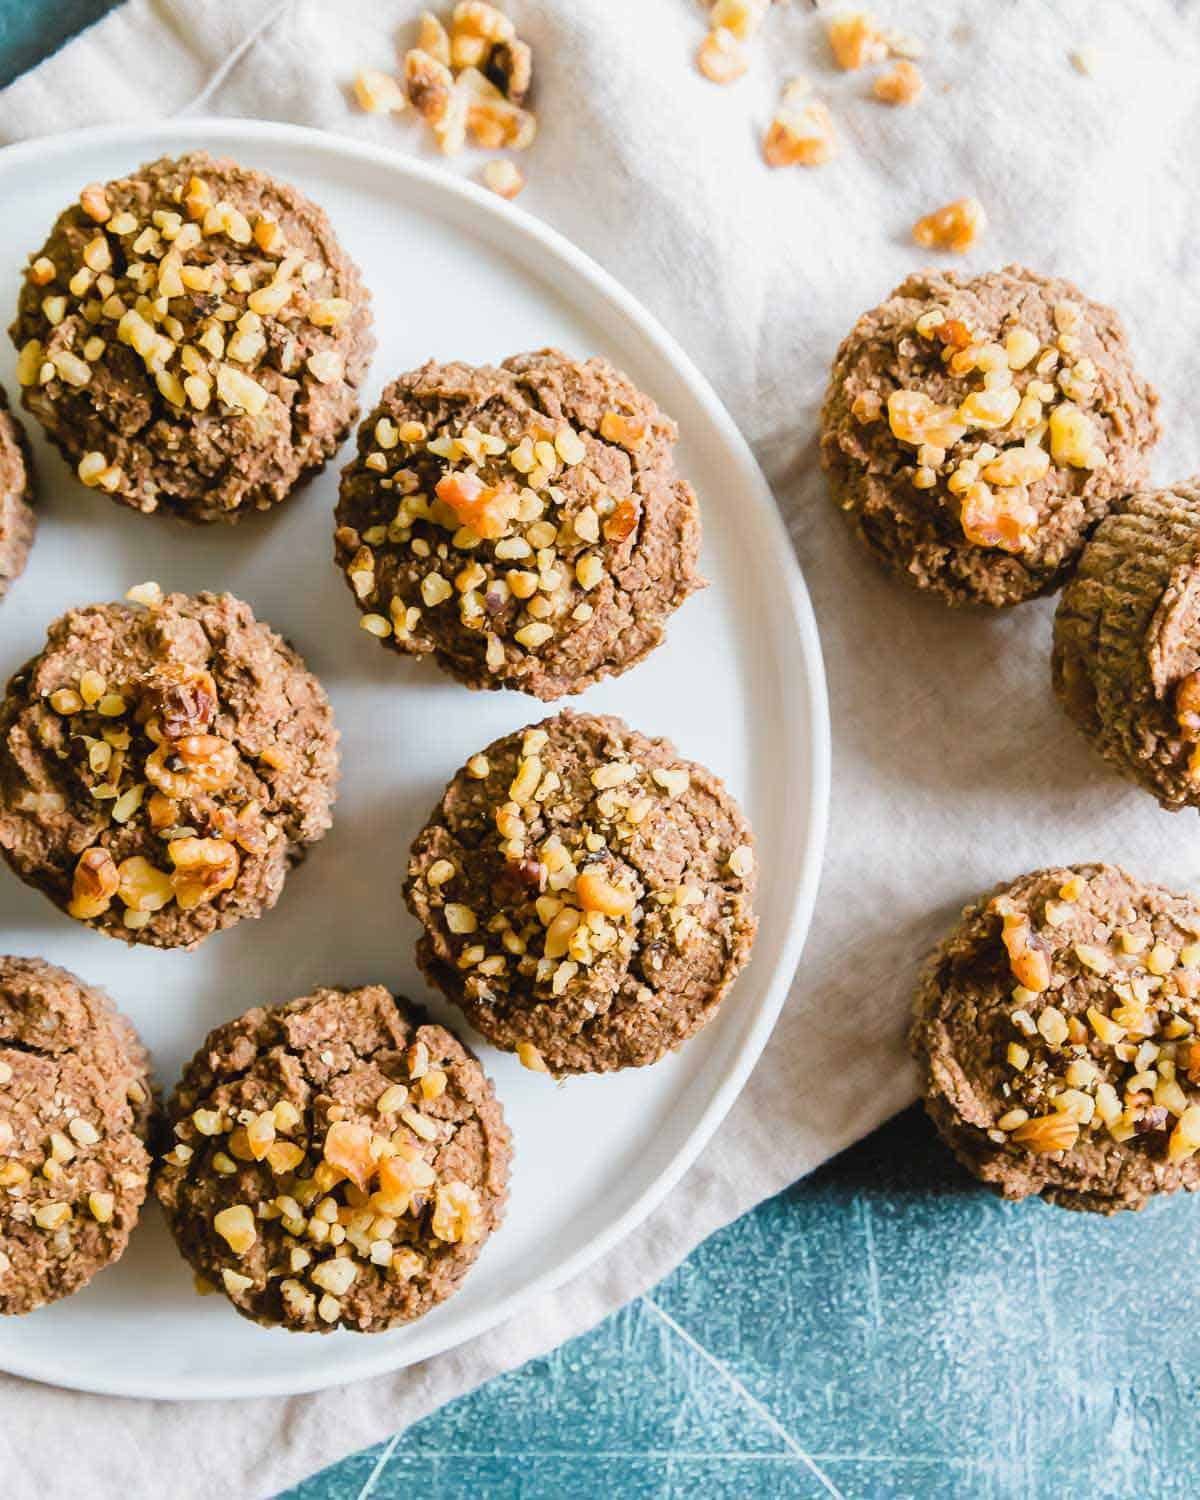 Vegan, gluten-free almond pulp muffins are a delicious healthy snack and great way to use up leftover almond pulp.